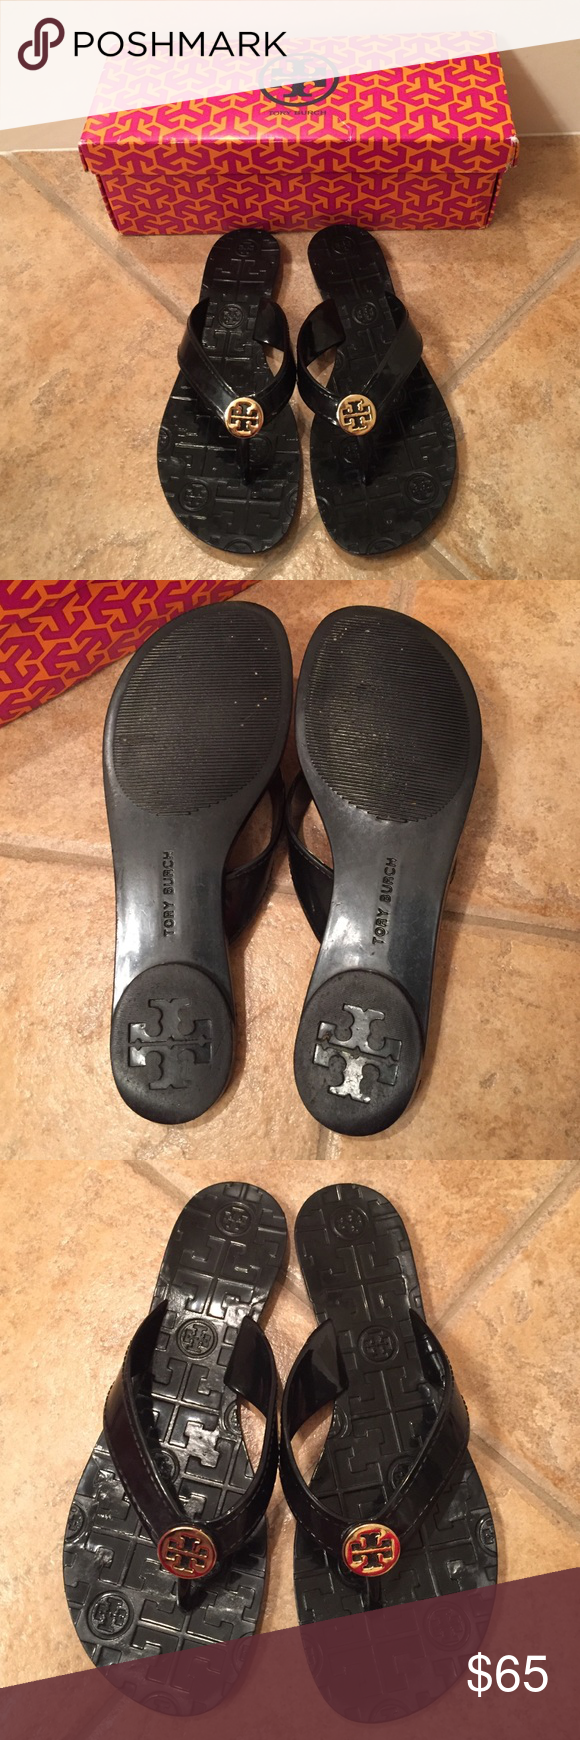 Tory Burch Flip Flops Gently used, black, Size 6. Perfect for the pool or beach! Tory Burch Shoes Sandals